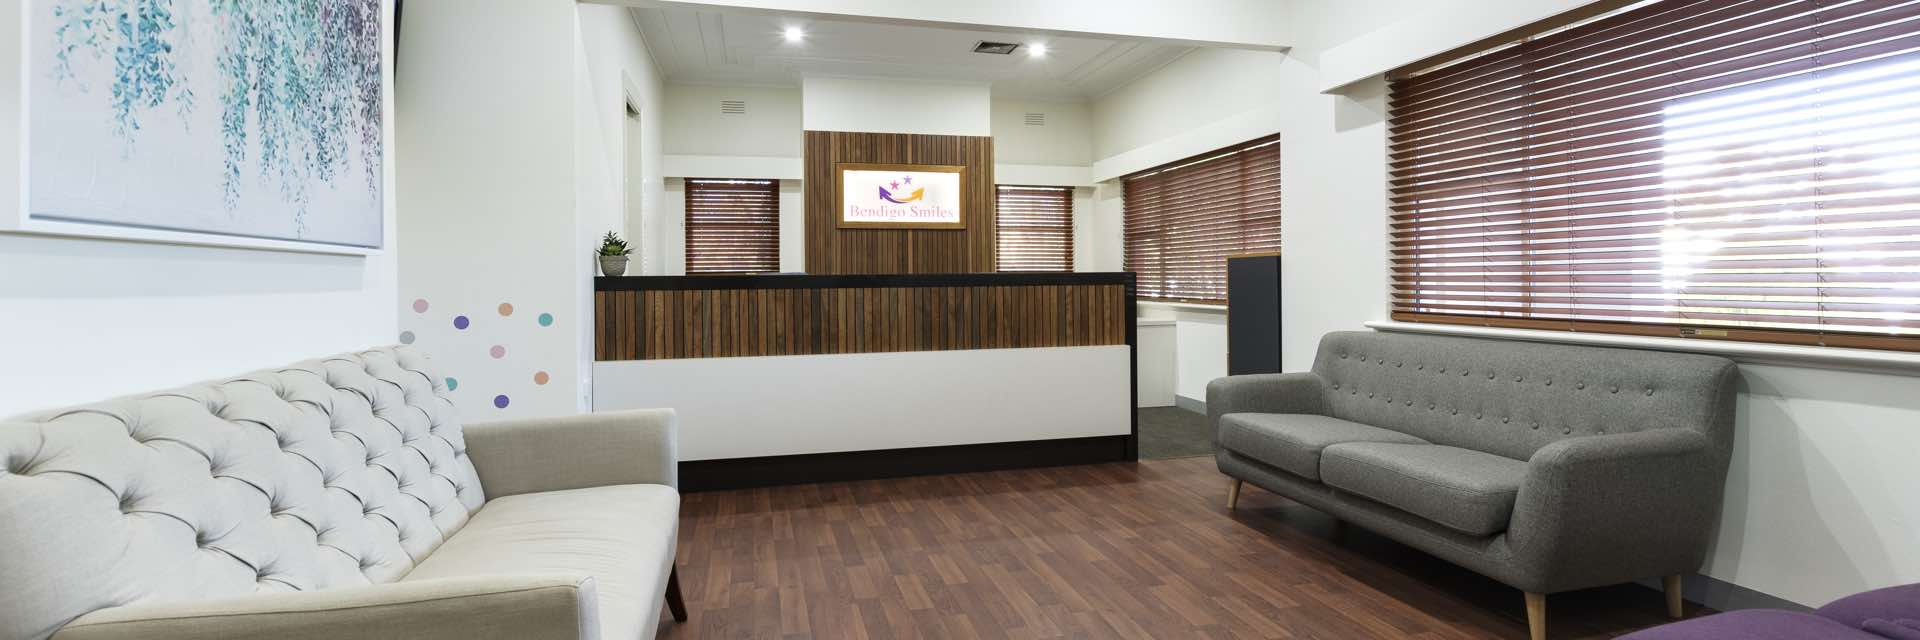 Castlemaine Smiles Dentist - Reception Area / Waiting Room